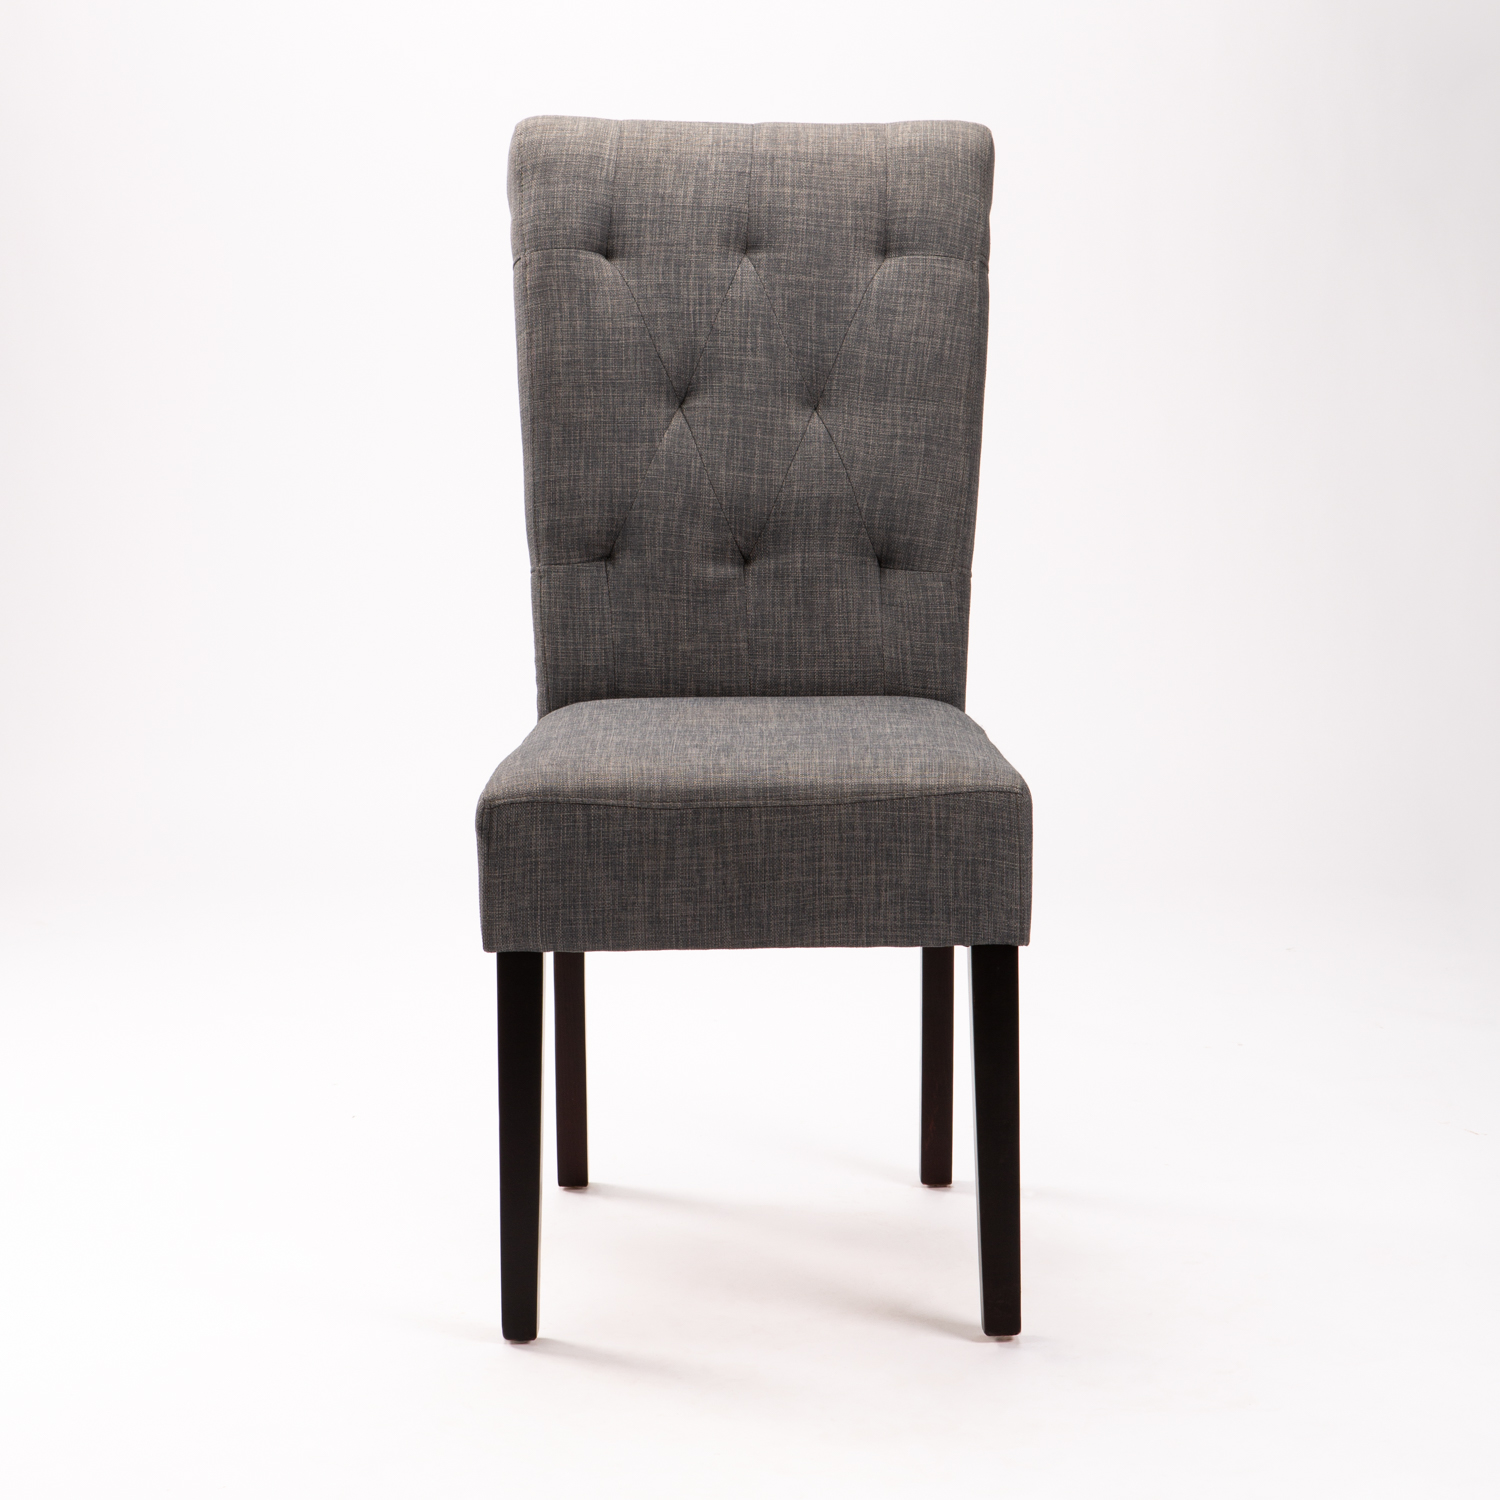 Decofurn Furniture Chesterfield Fabric Dining Chair